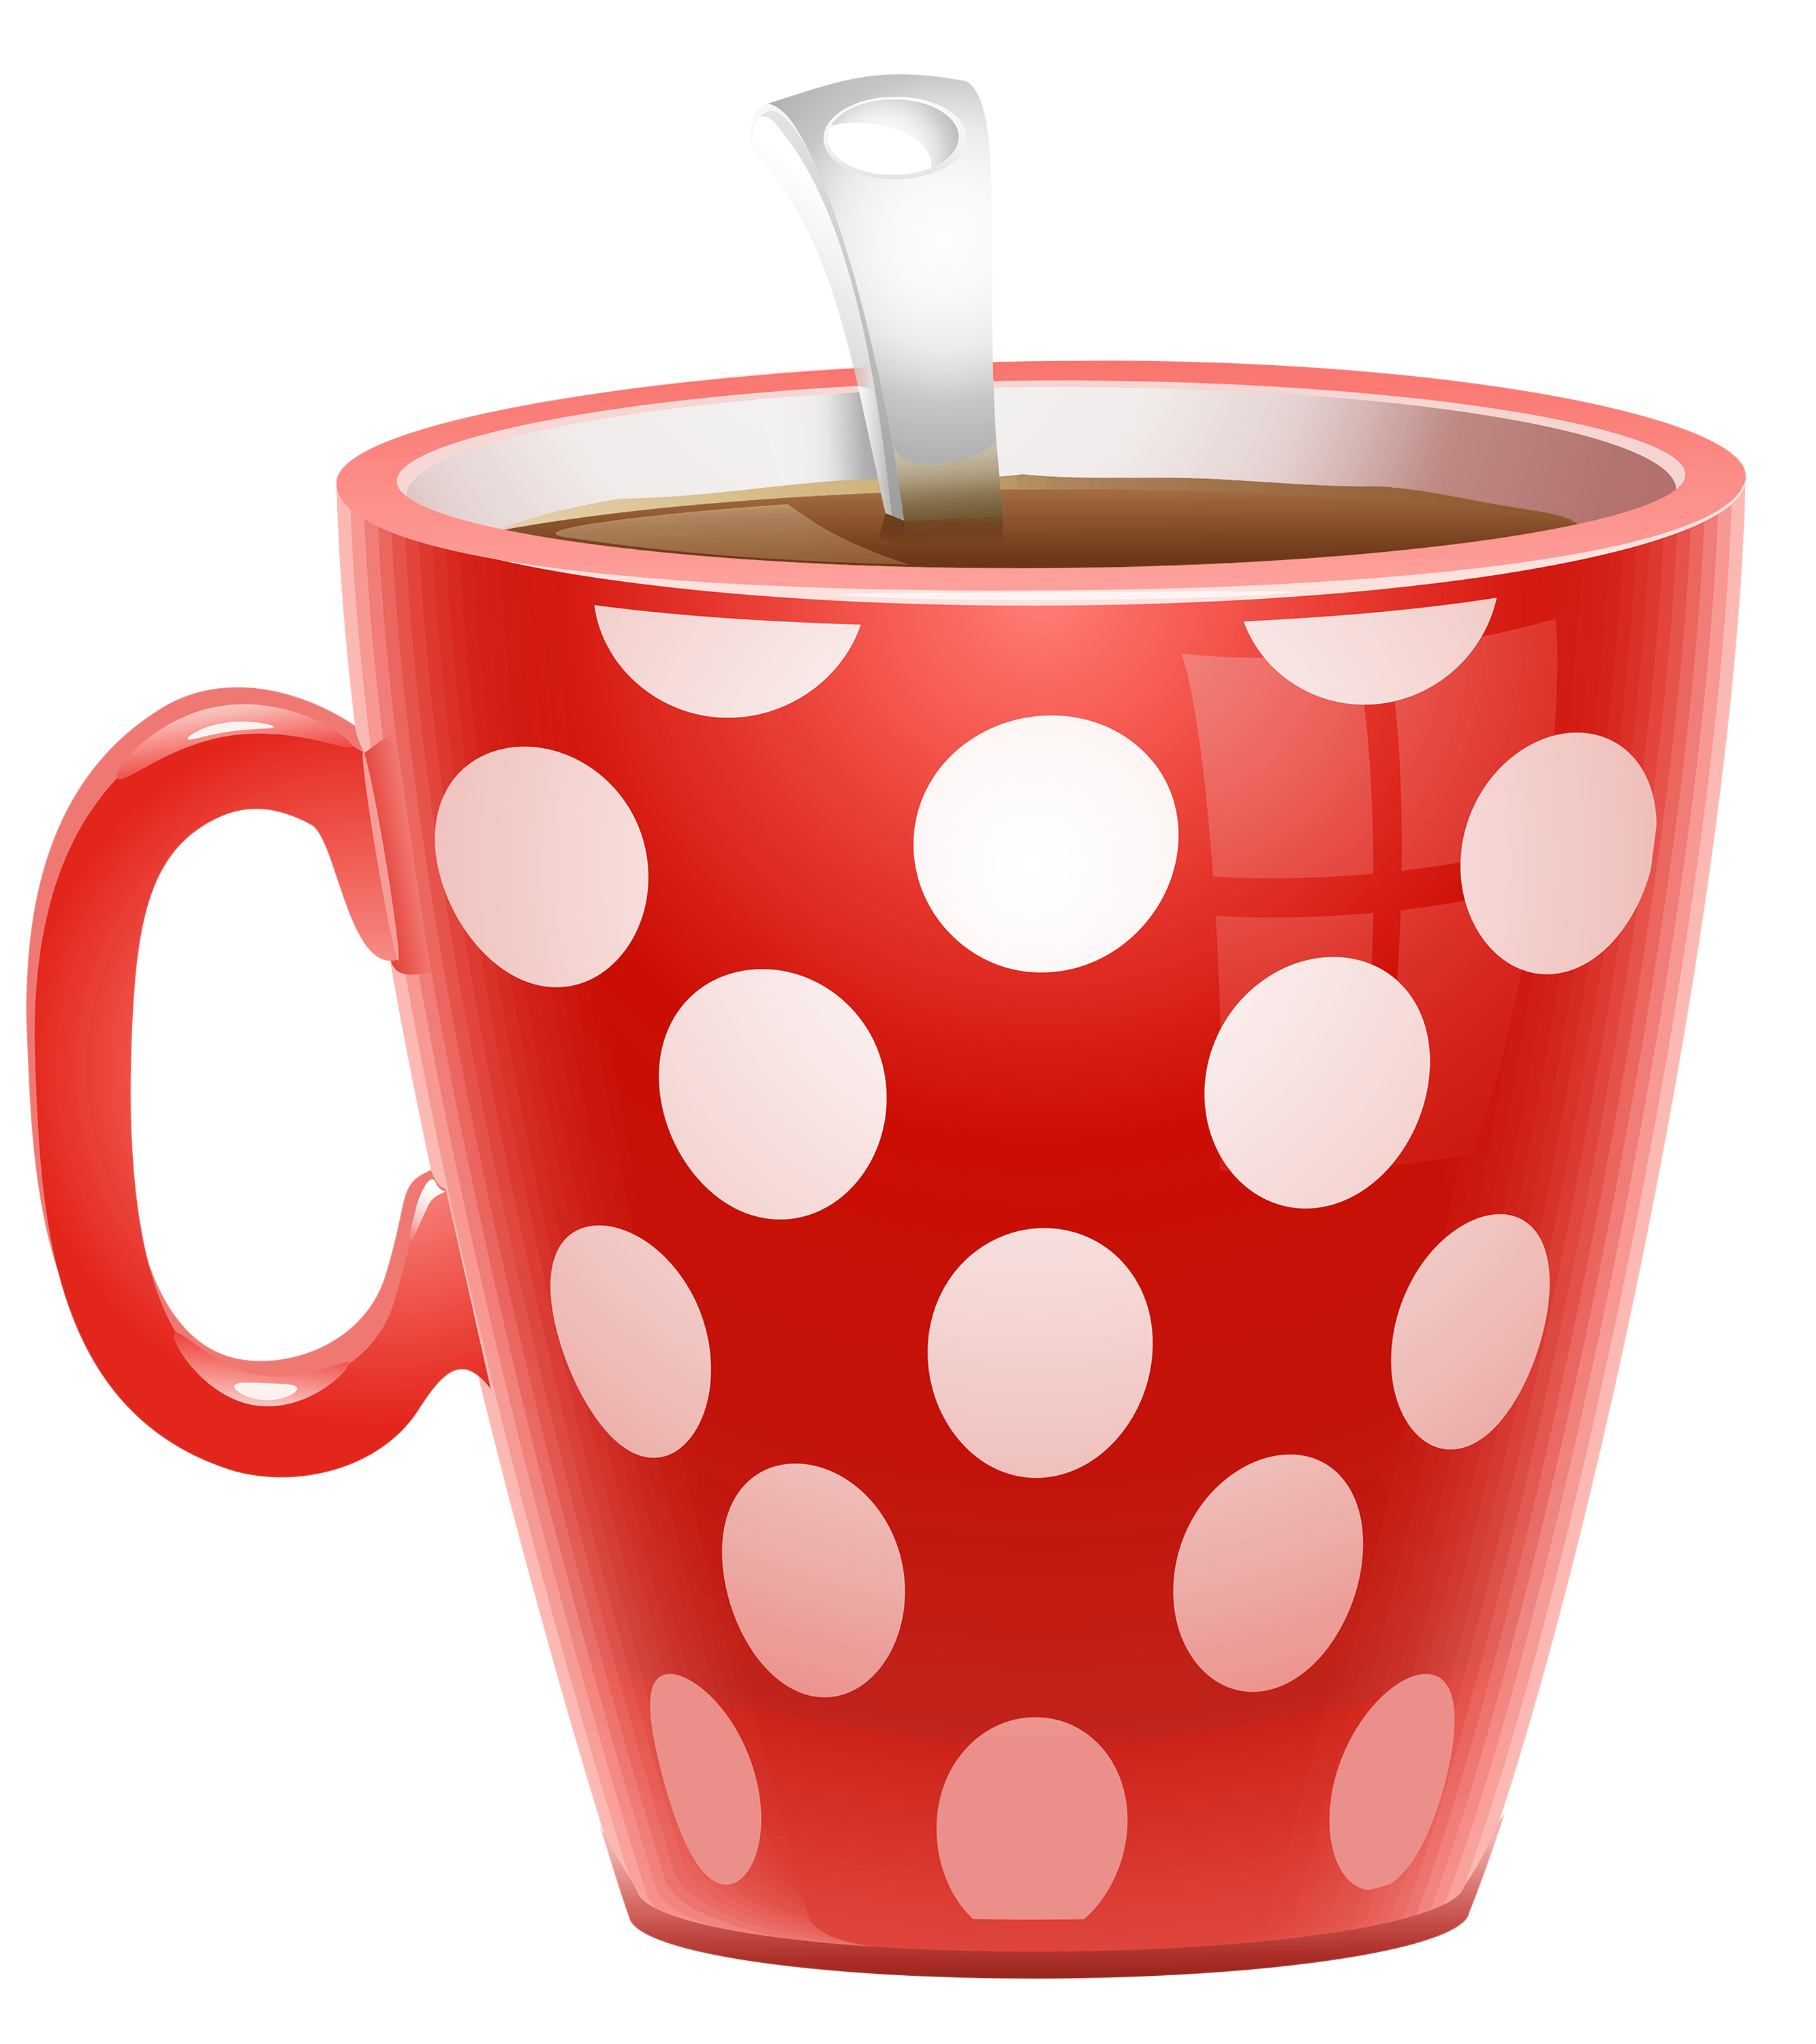 Latte clipart tumbler starbucks. Red dotted coffee cup